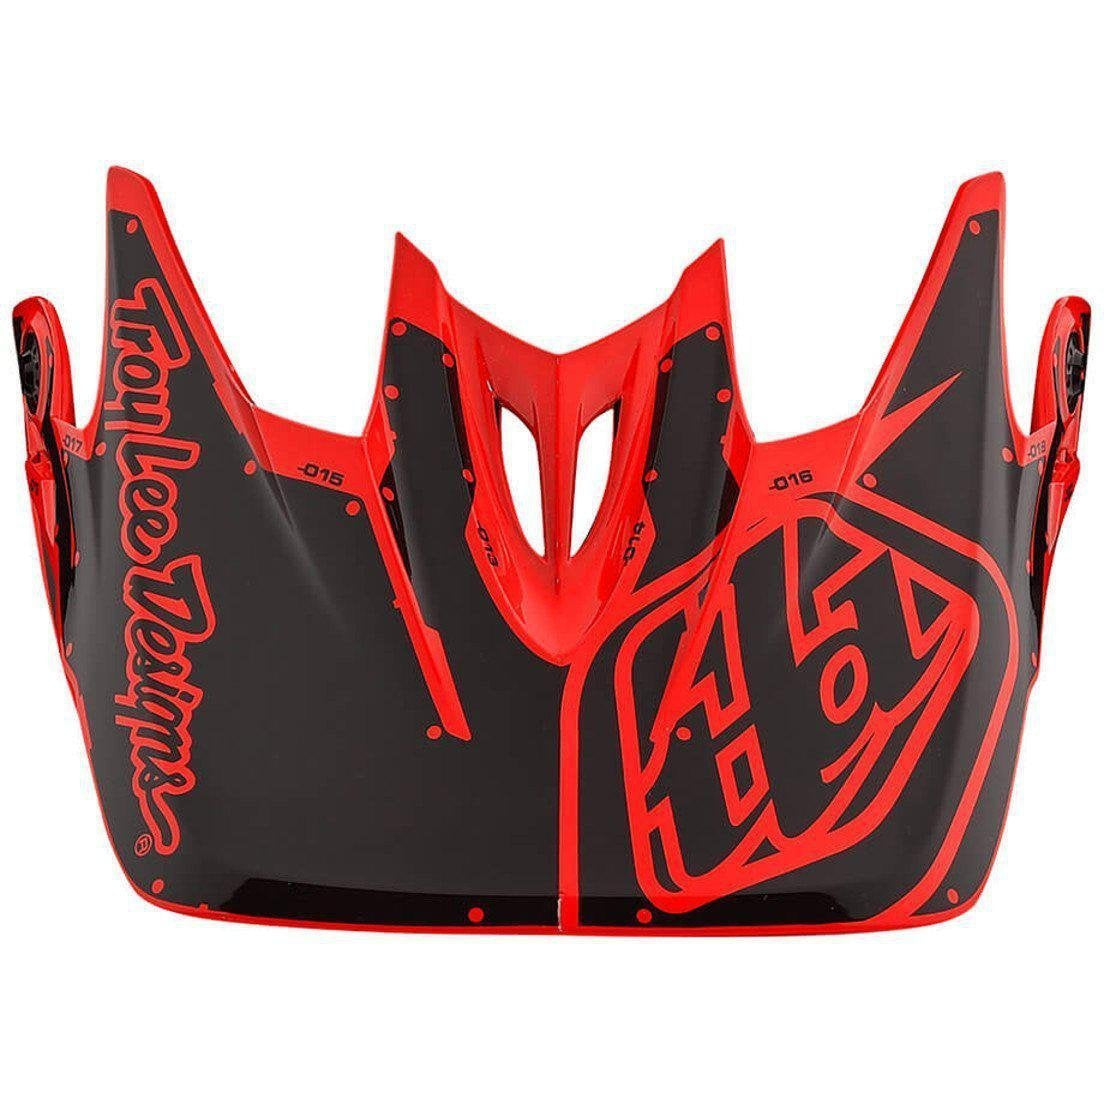 Troy Lee Designs-Troy Lee Designs D3 Helmet Replacement Visor-FACTORY ORANGE-D3 Fiberlite-TLD157008700-saddleback-elite-performance-cycling